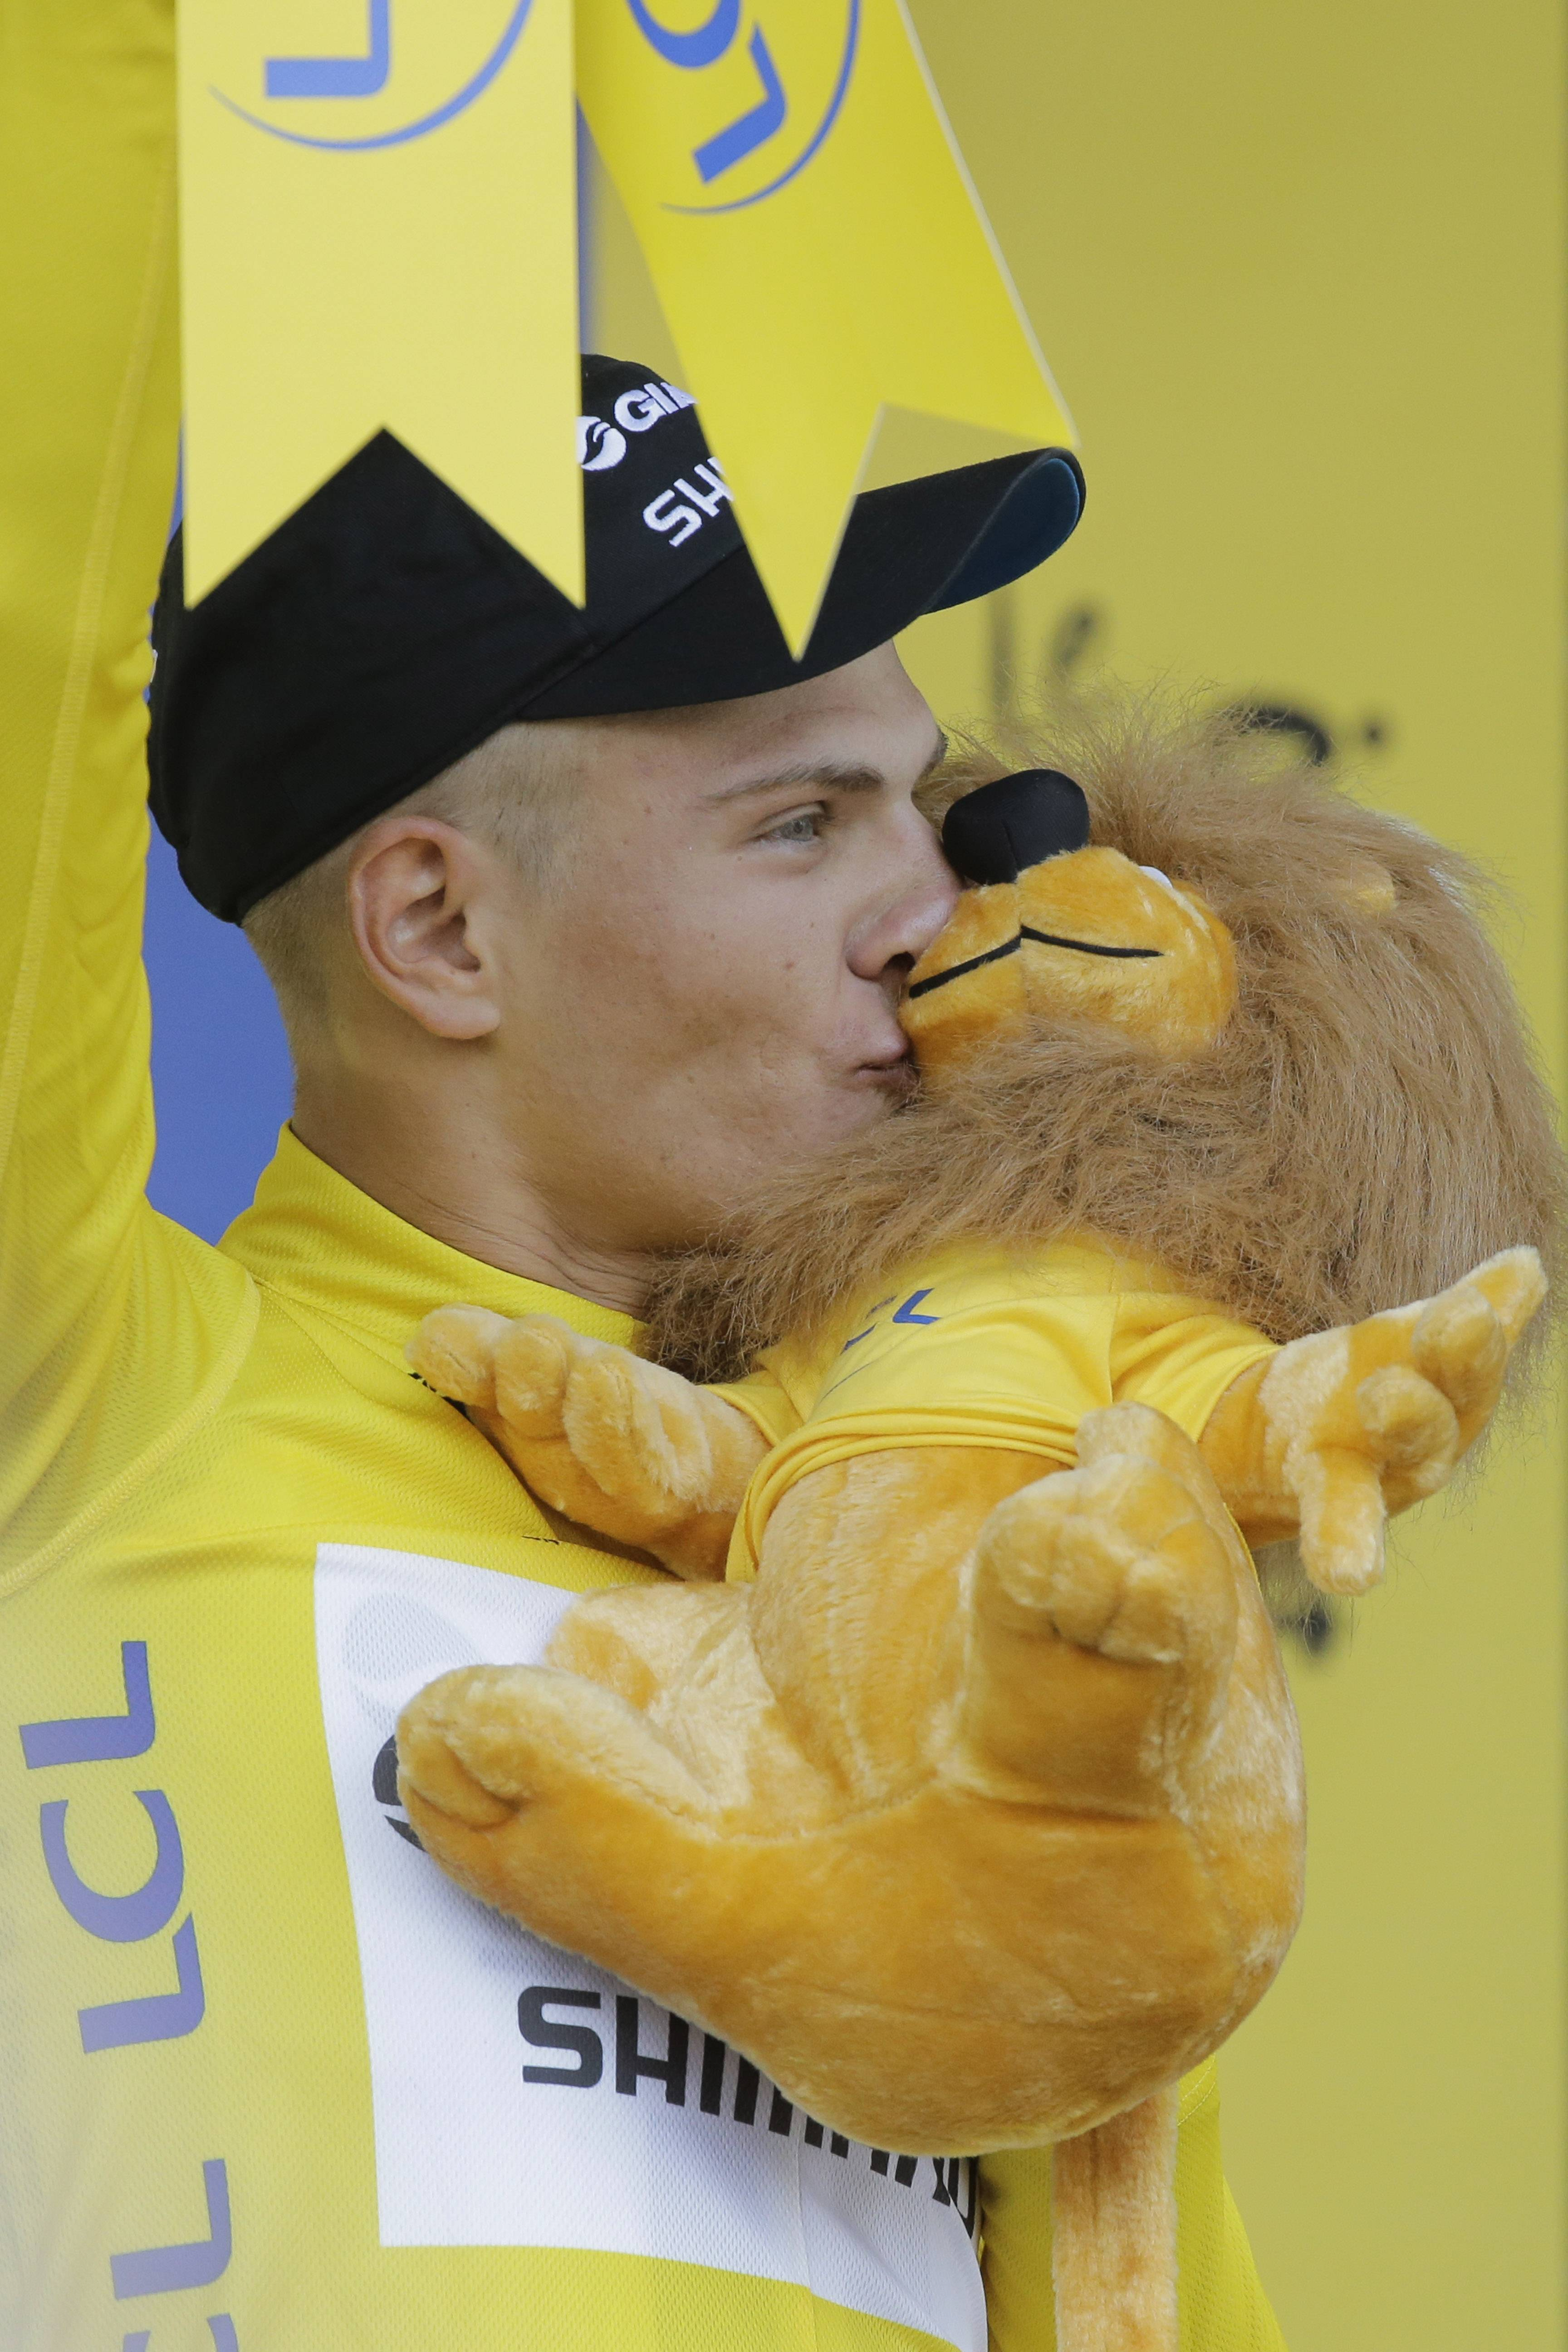 Sprinter Marcel Kittel kisses the trophy after winning the first stage and the overall leader's yellow jersey Saturday in the Tour de France, which started in Leeds and finished in Harrogate, England.